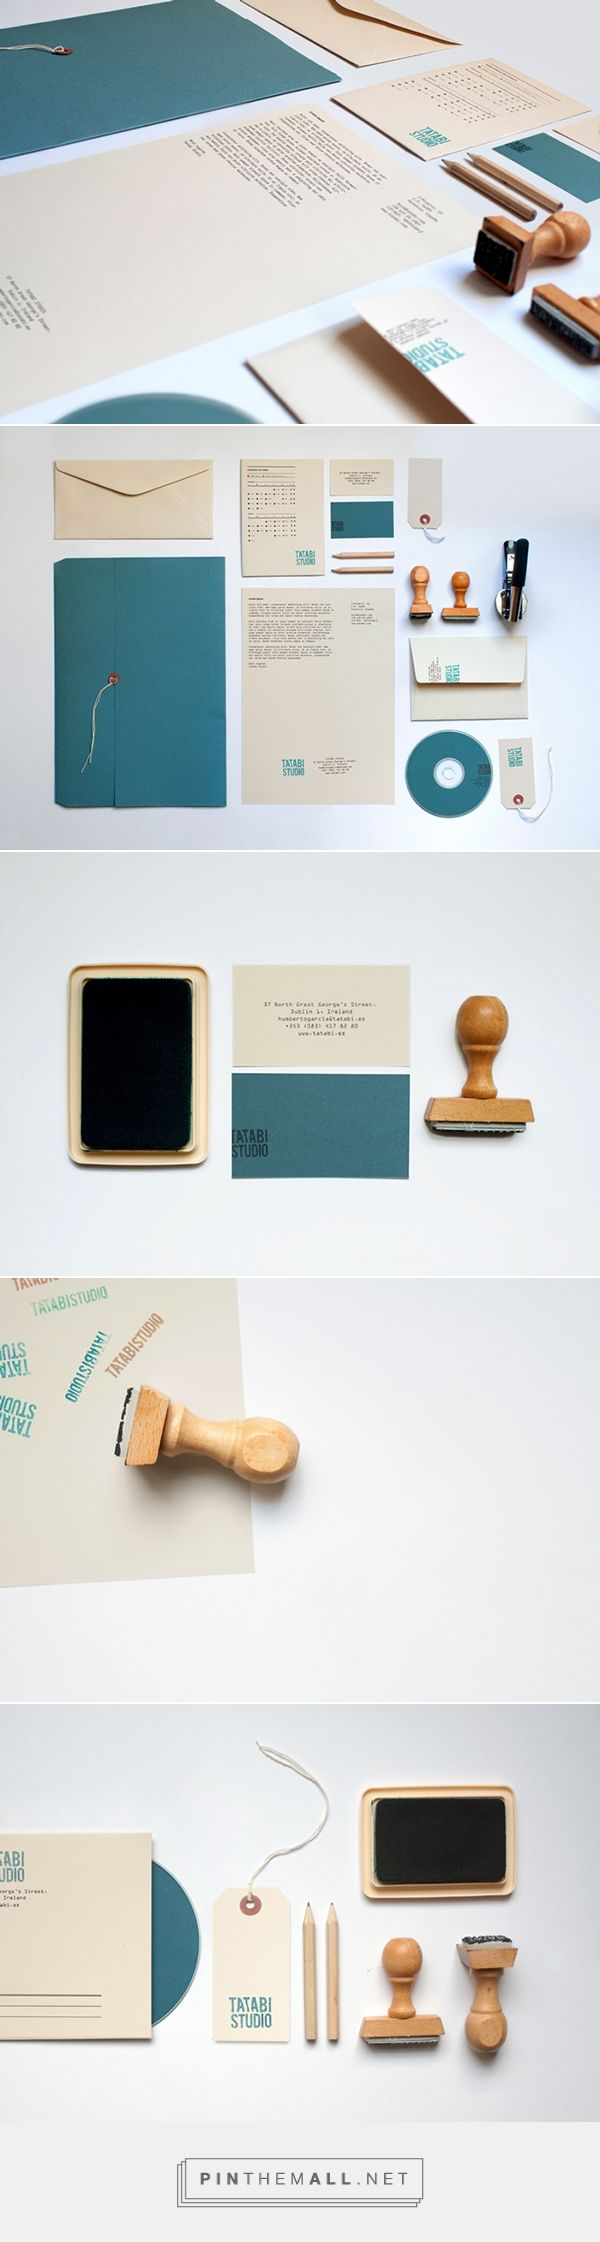 Tatabi Studio Self Branding | Fivestar Branding – Design and Branding Agency & Inspiration Gallery